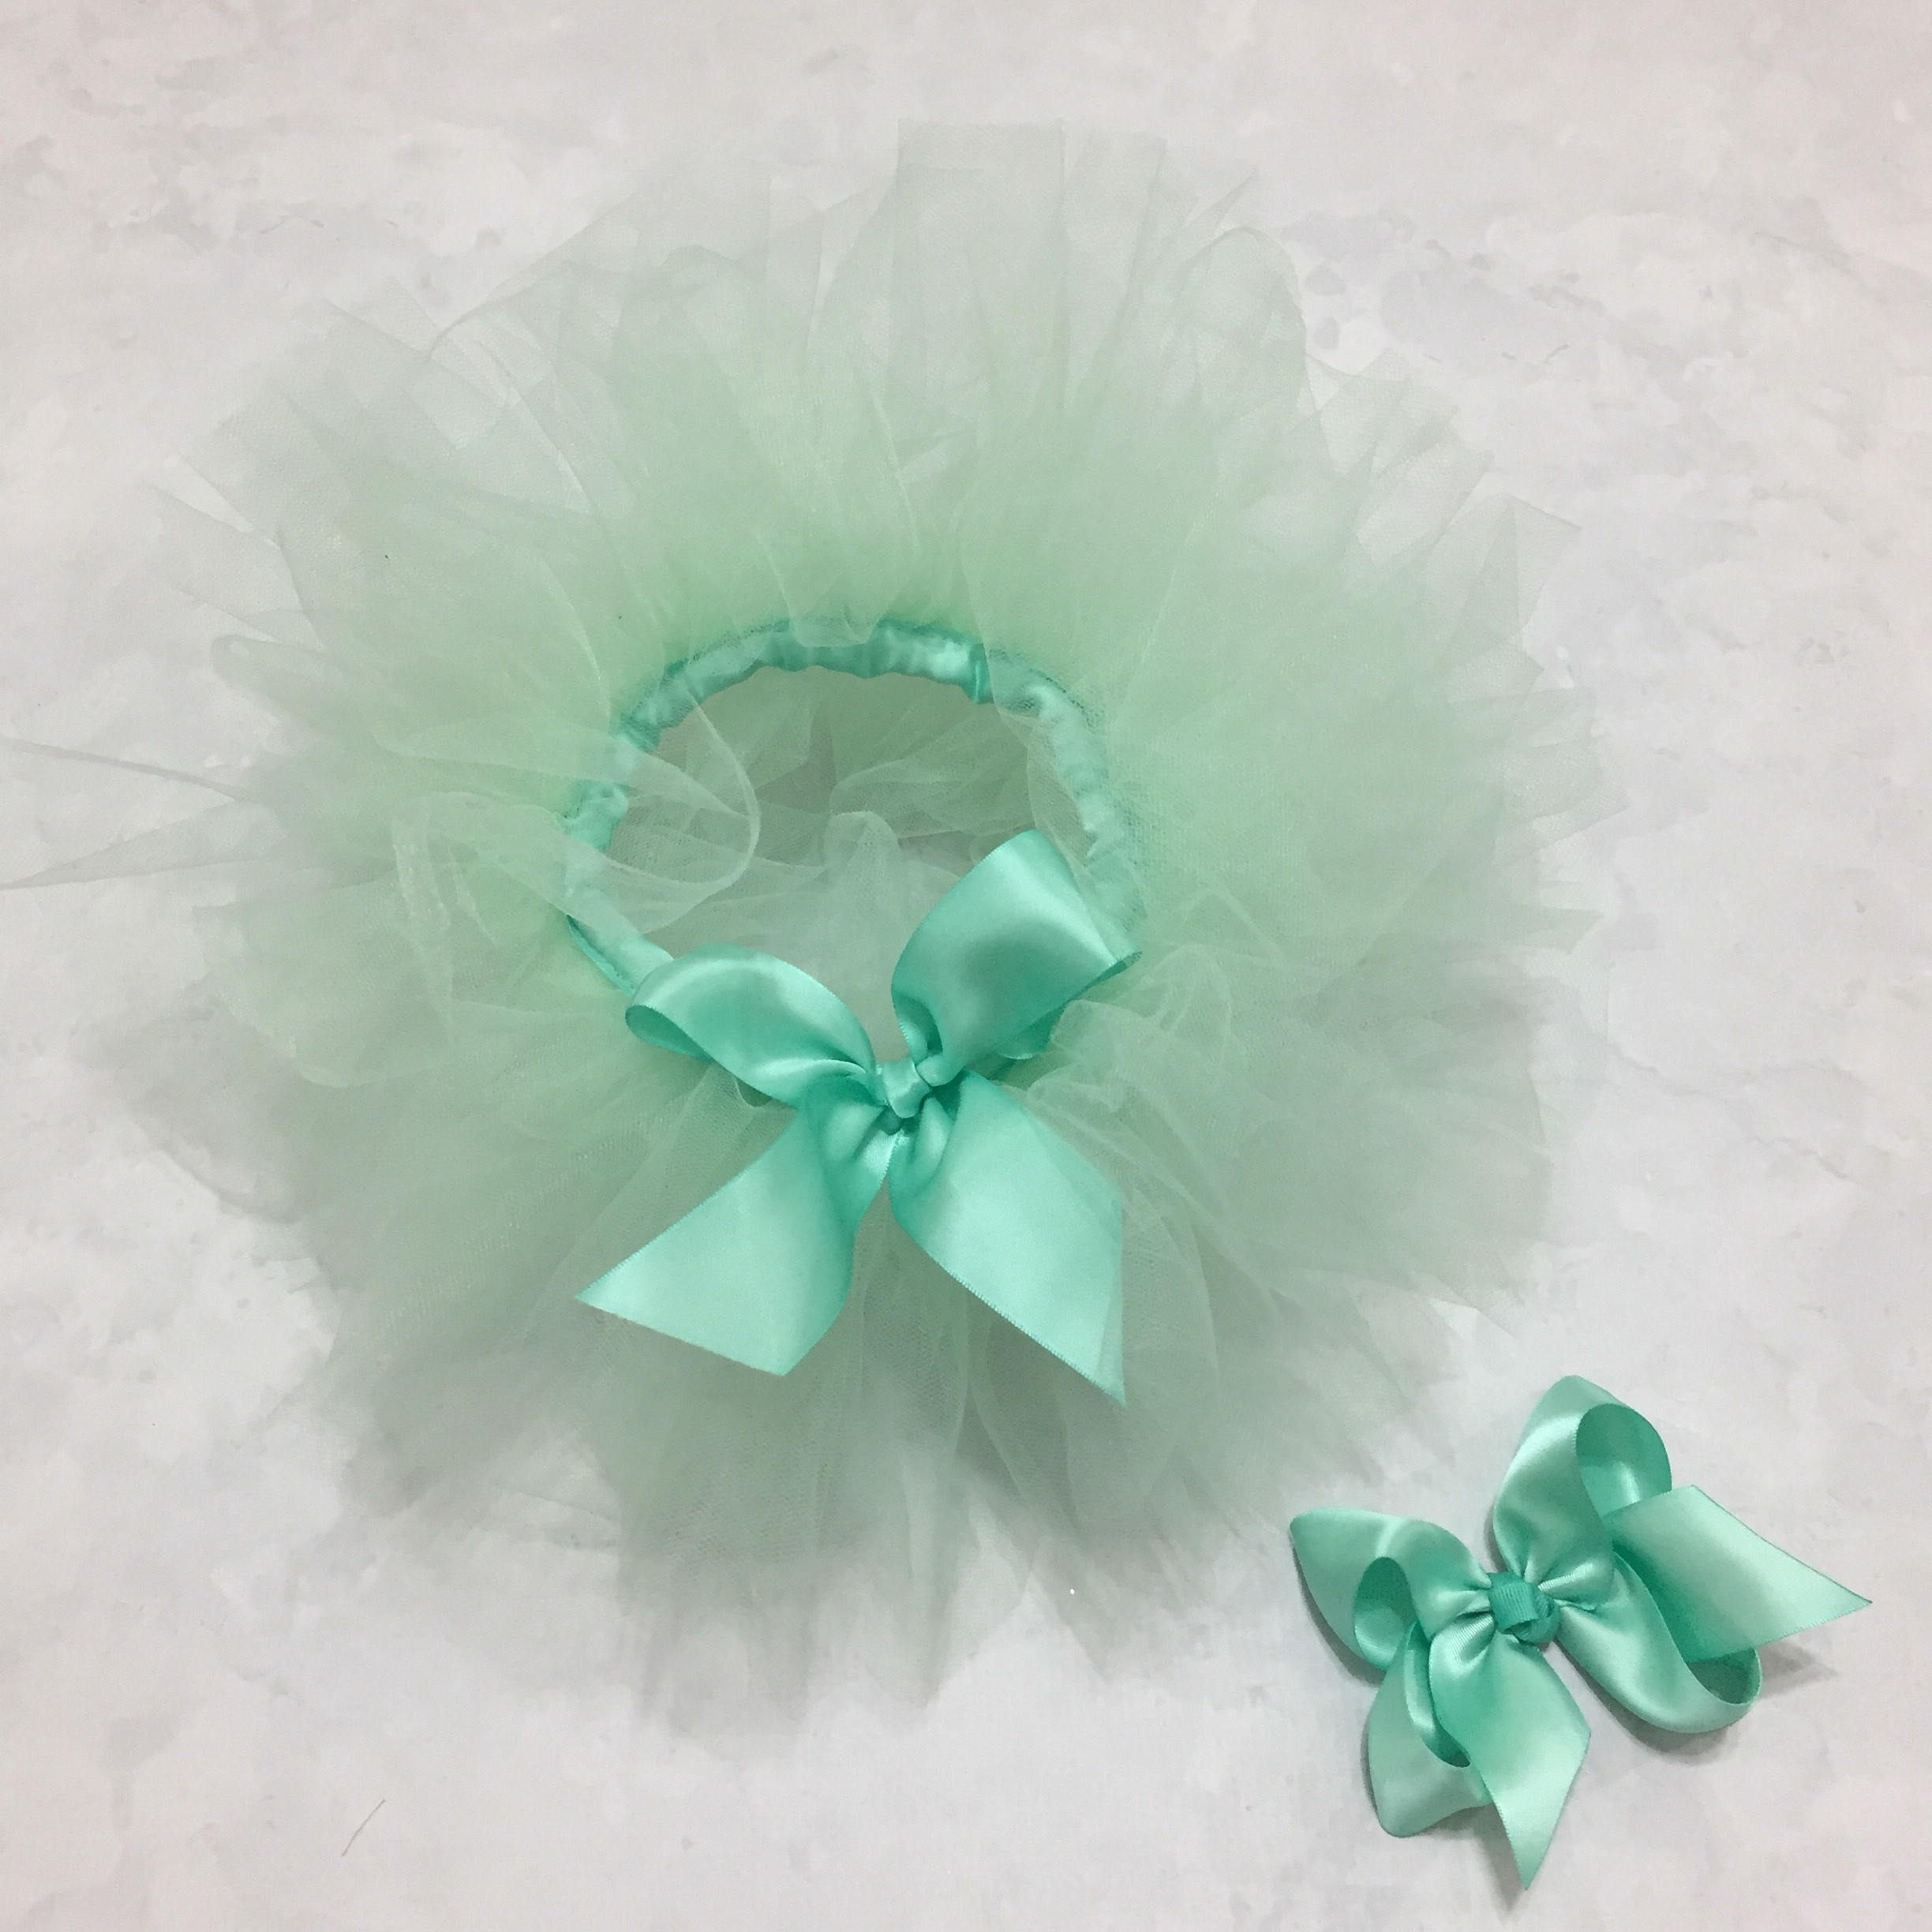 Mint Green Tutu & Satin Hair Bow Set Girls First Birthday Cake Smash Photo Prop Baby's 1st Bday Christmas Gift Ideas Toddler Dress Up Outfit